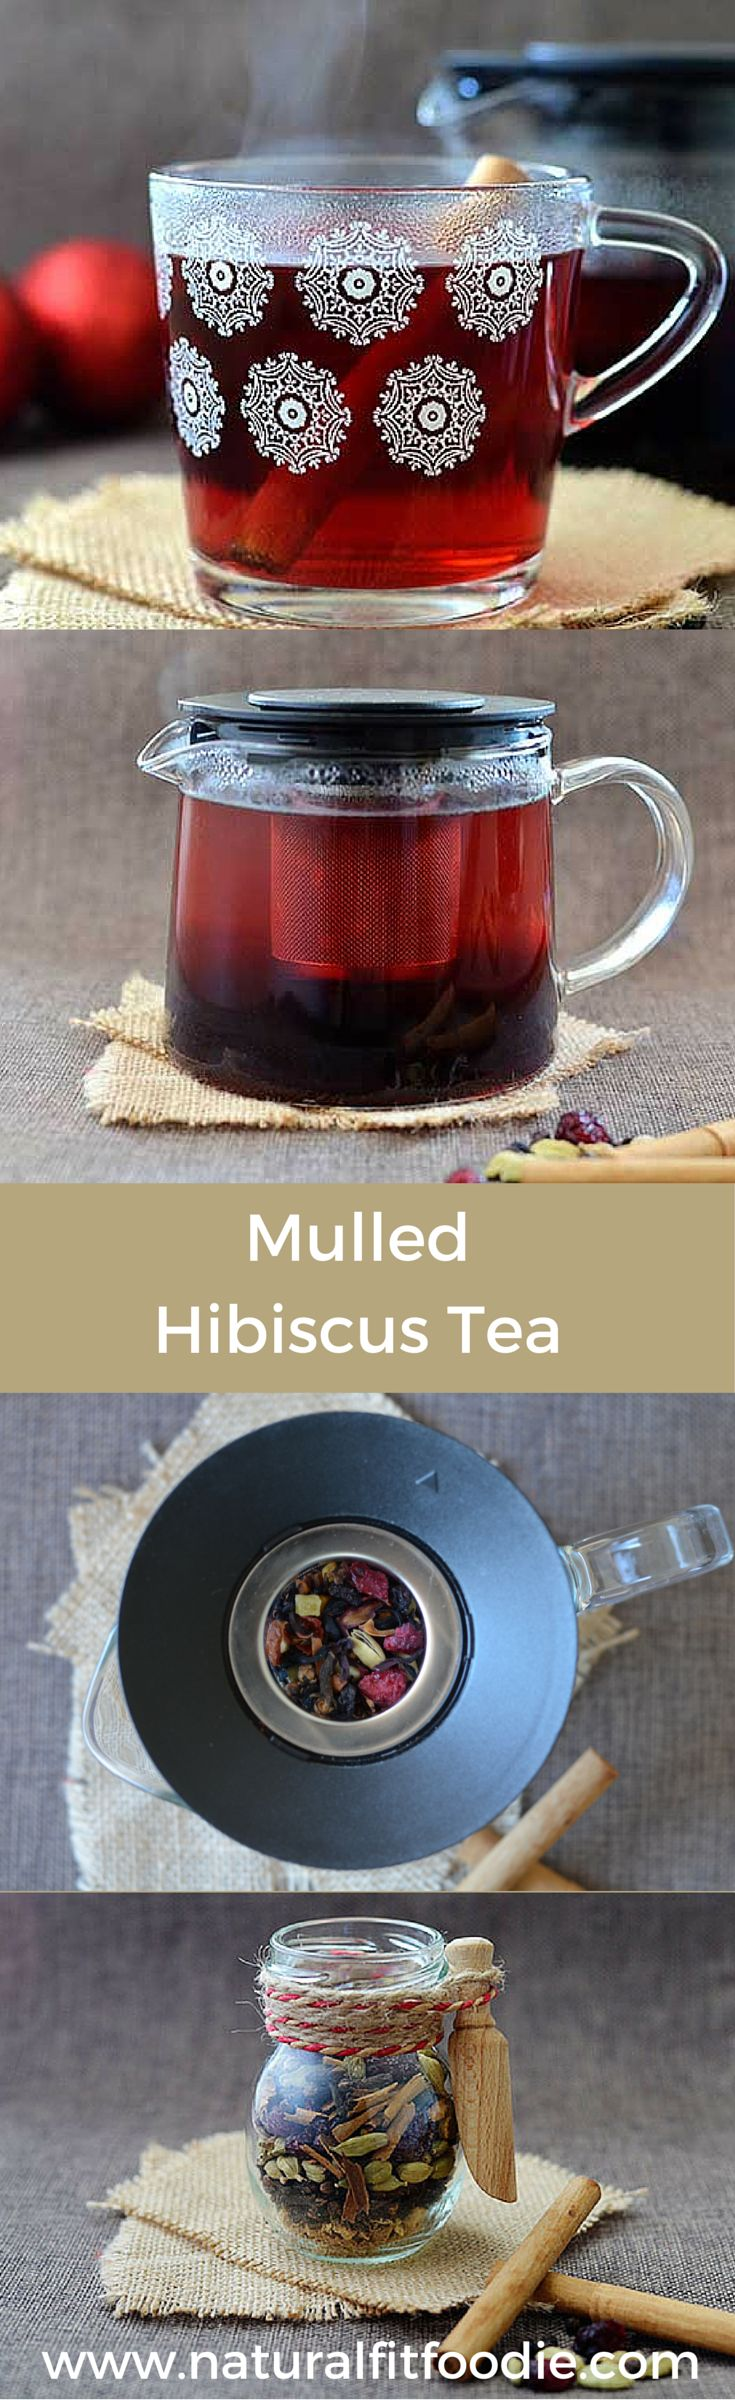 Move over mulled wine and cider here's a delicious non alcoholic festive drink everyone can enjoy! Being able to sip on this mulled hibiscus tea all day is a real winter treat and helps me appreciate the season.